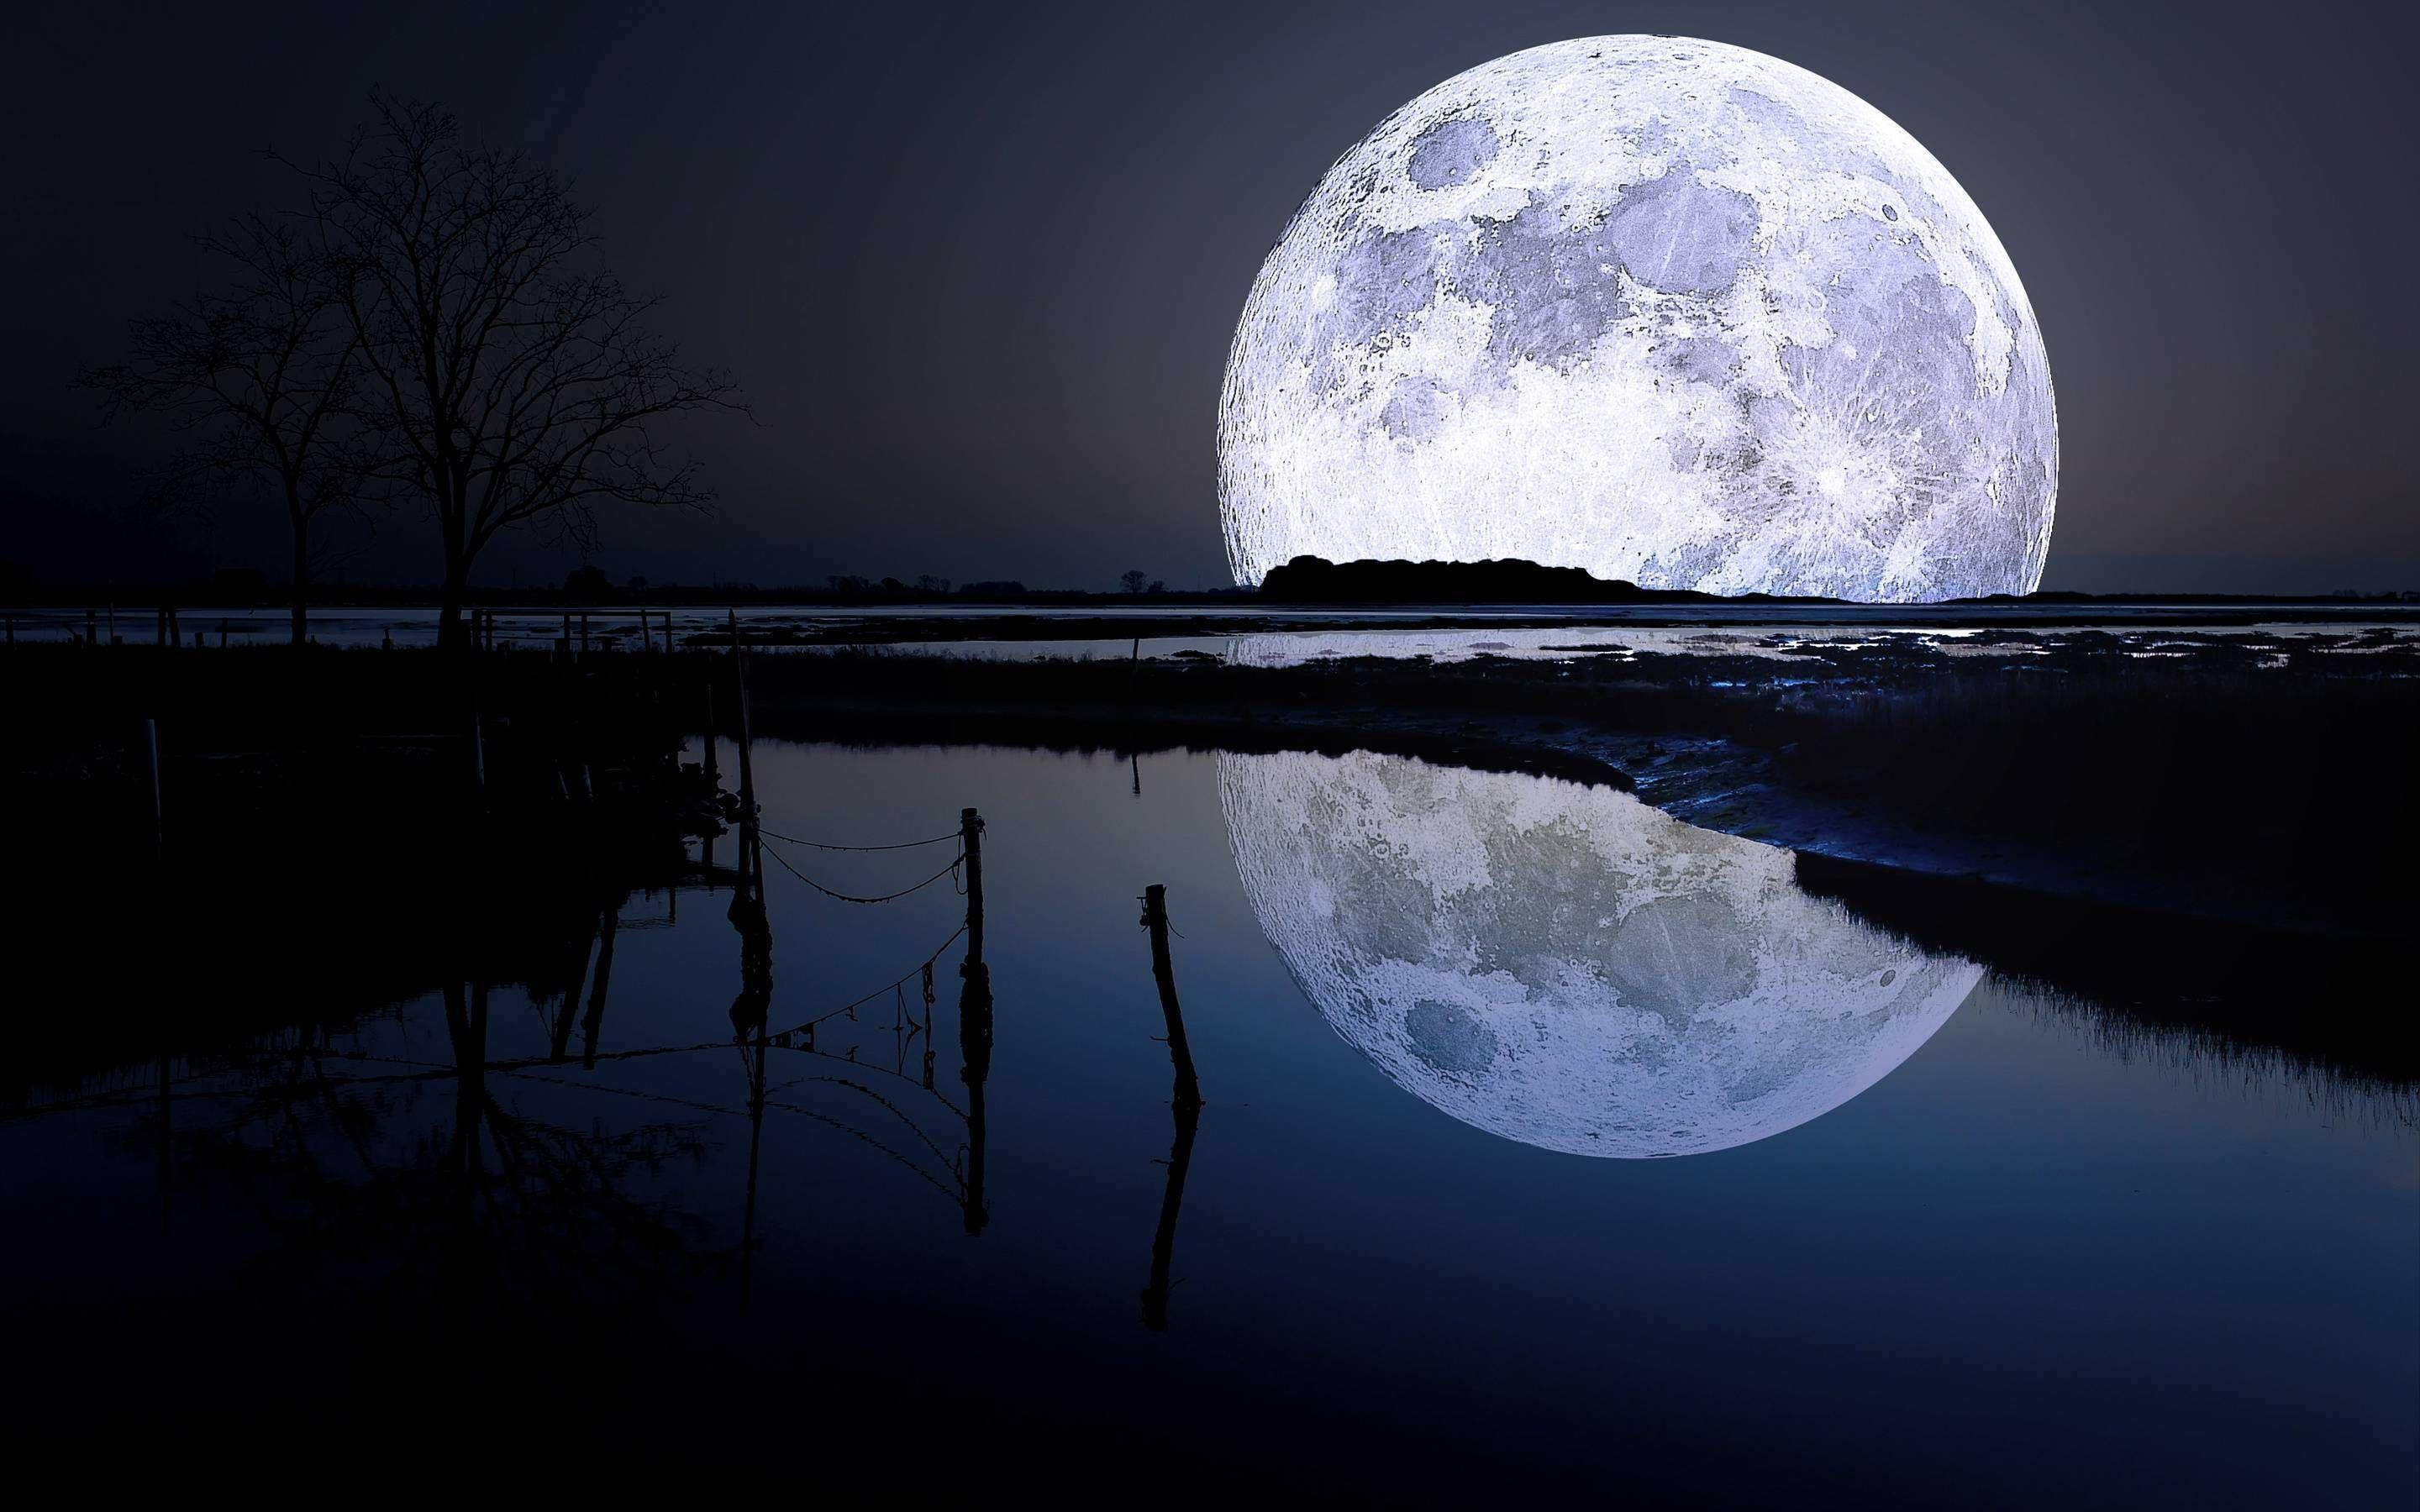 Full Moon Wallpaper Pics | Wallpaper | Pinterest | Moon on the water ...